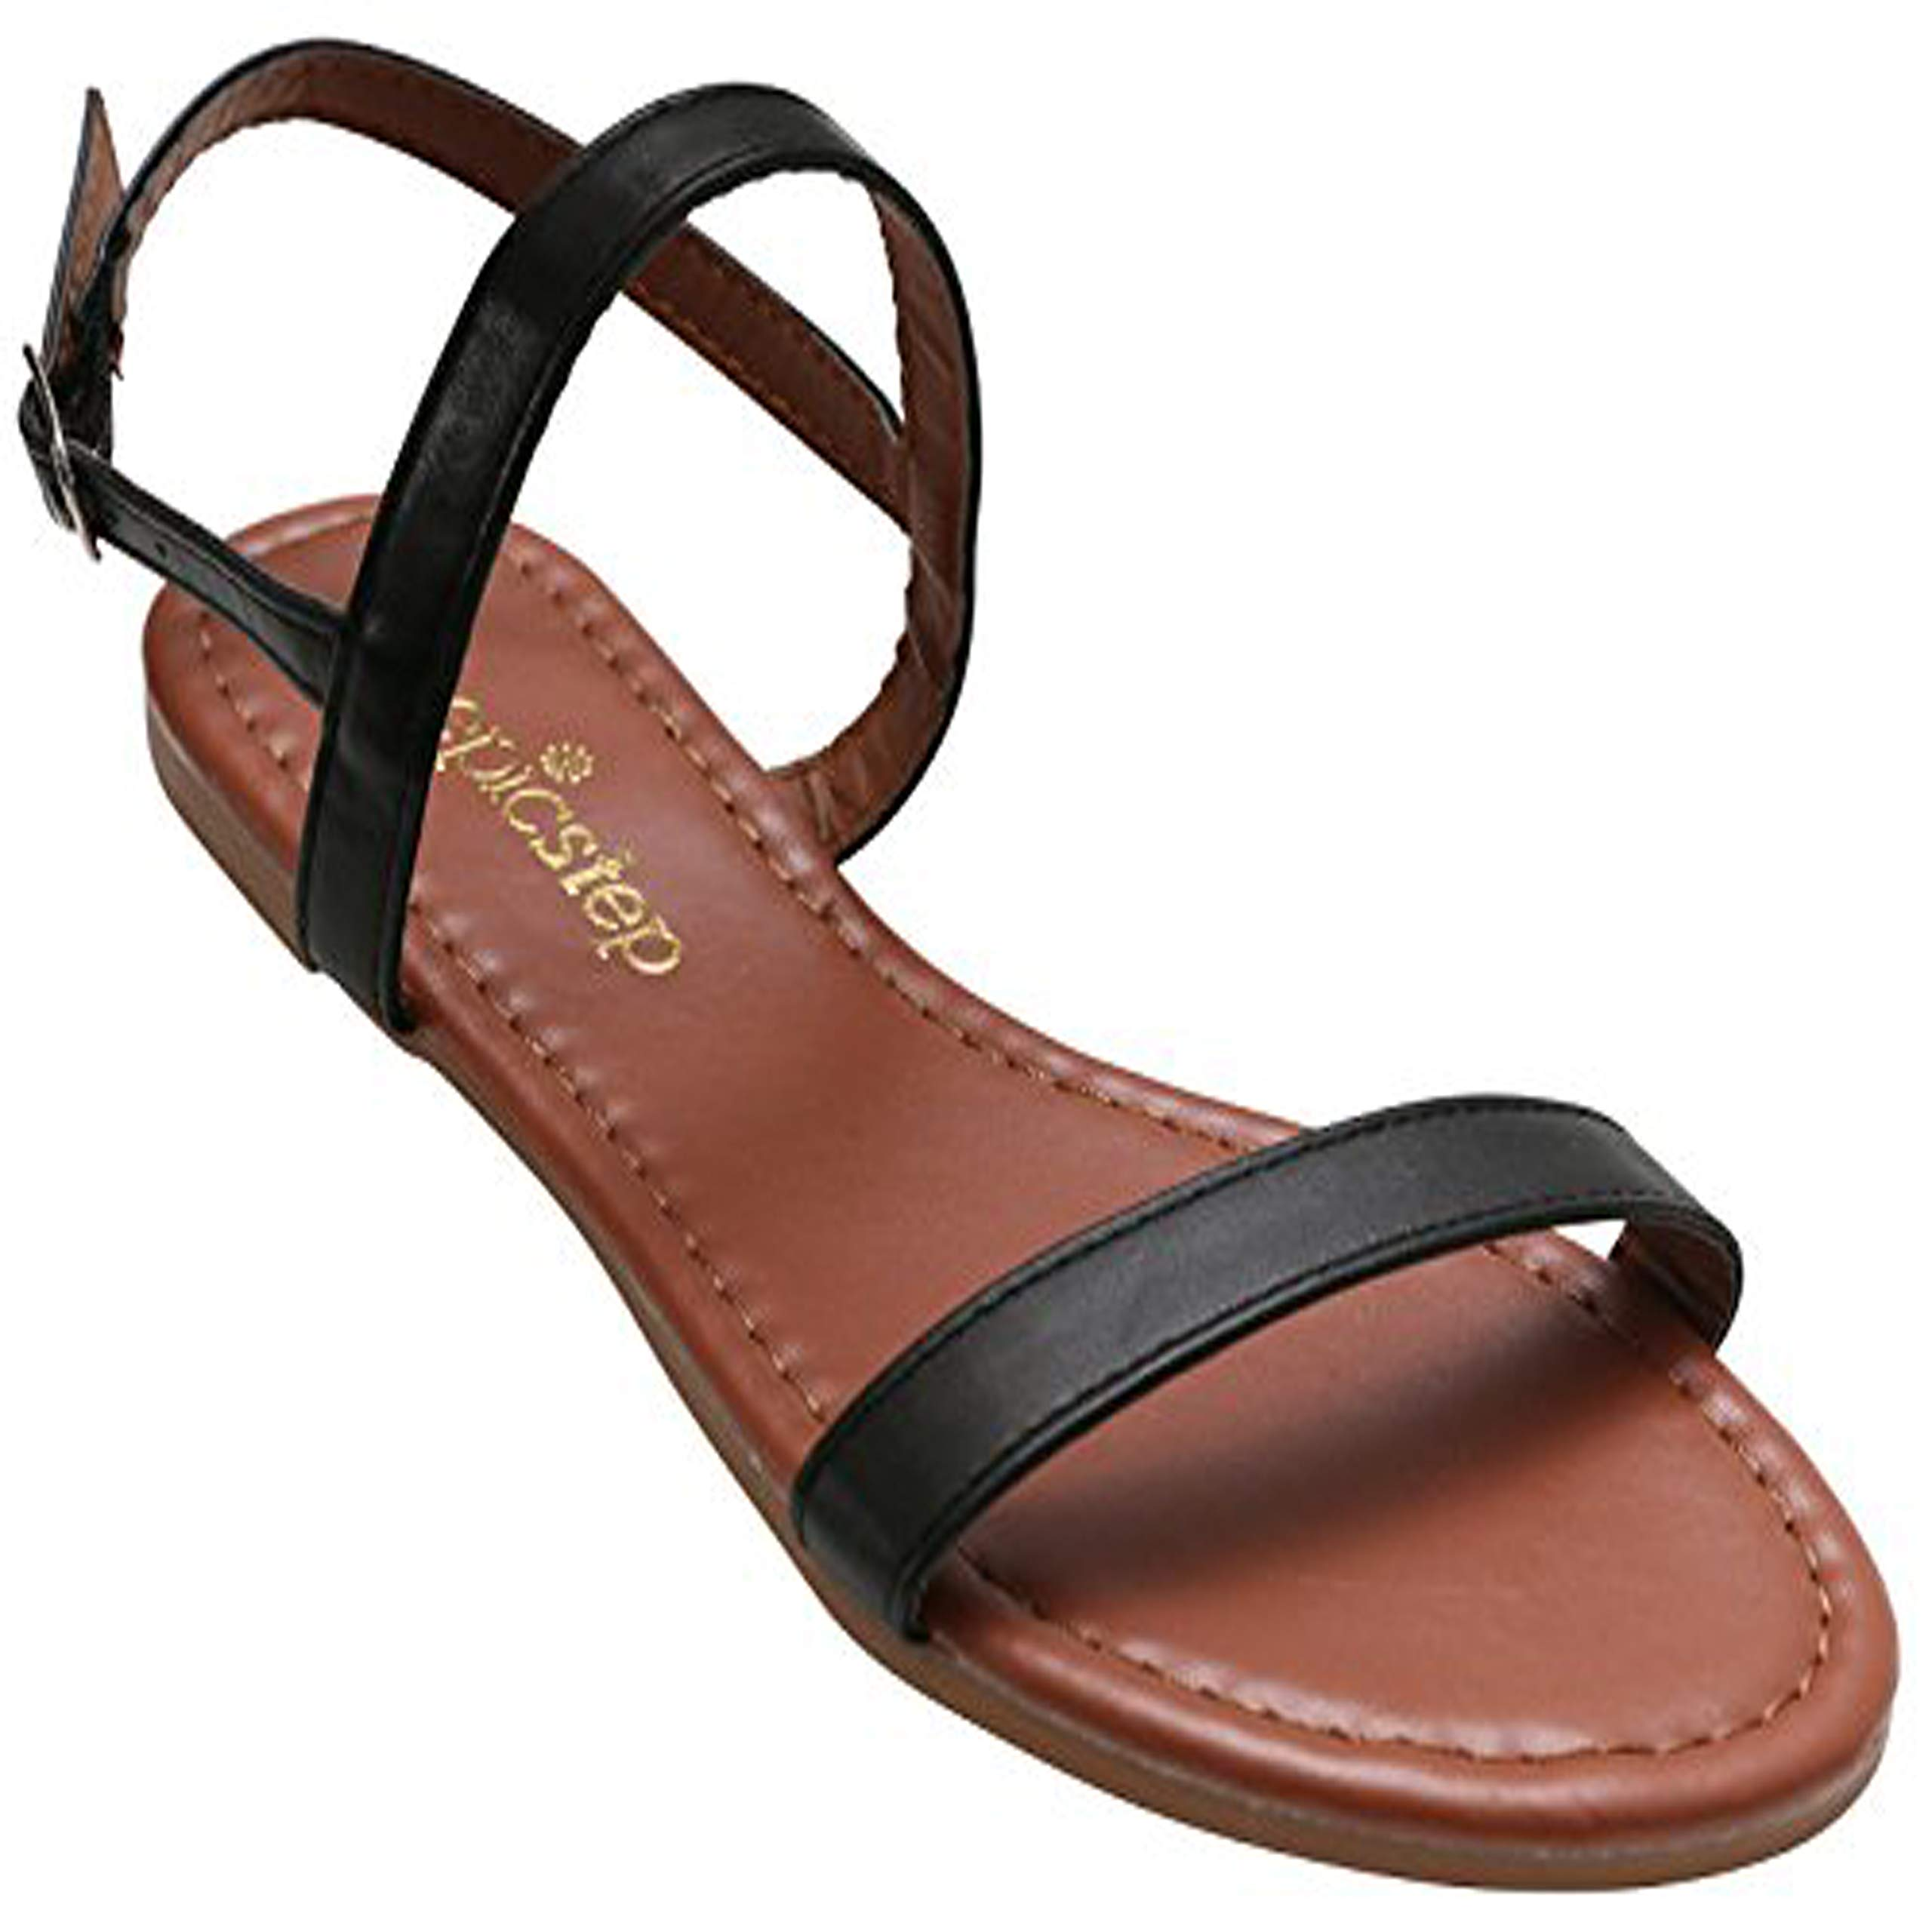 Womens Sandals, Double Strap, Open Toe Flat Summer Sandals for Women, Shoes for Ladies (8, Black)